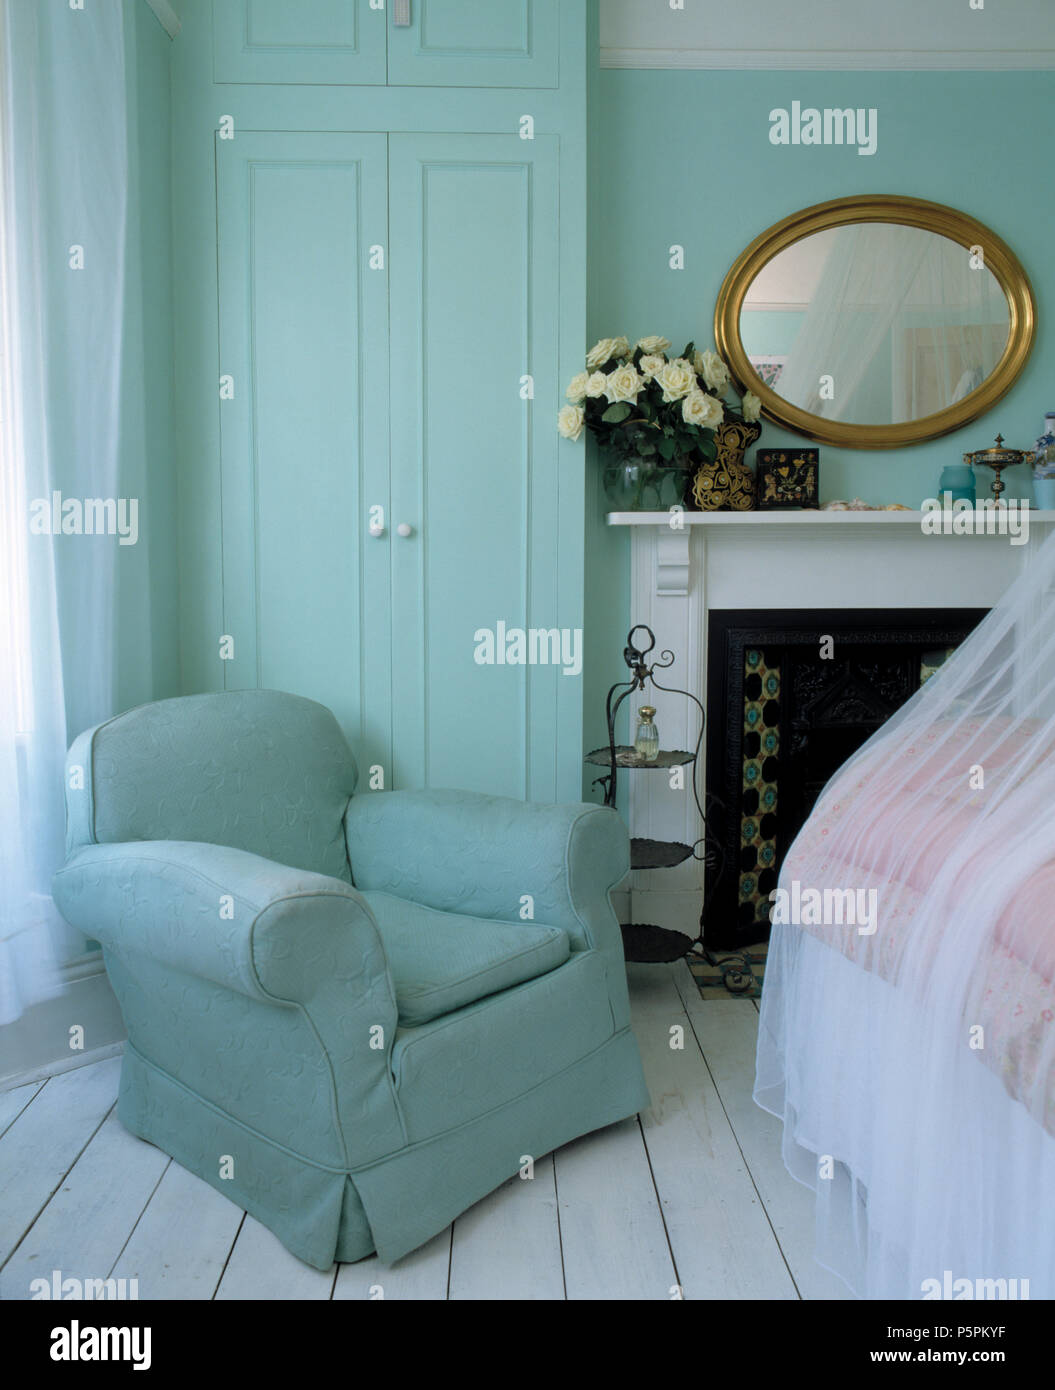 Pale turquoise armchair and white painted floorboards in ...